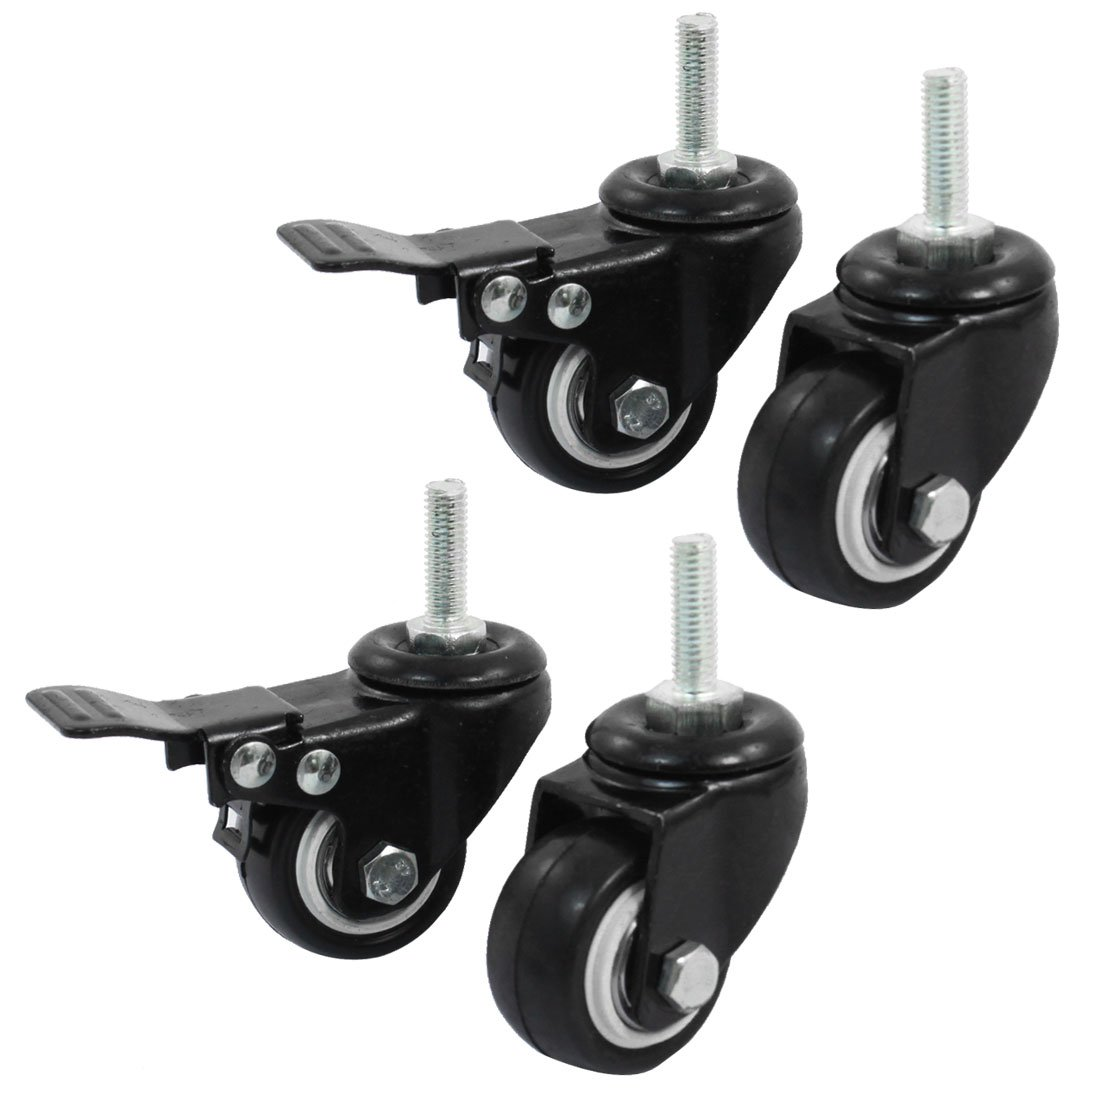 Uxcell a14071600ux0660 Shopping Wheel Trolley Brake Swivel Caster, 1.5-Inch, Black, 4-Piece